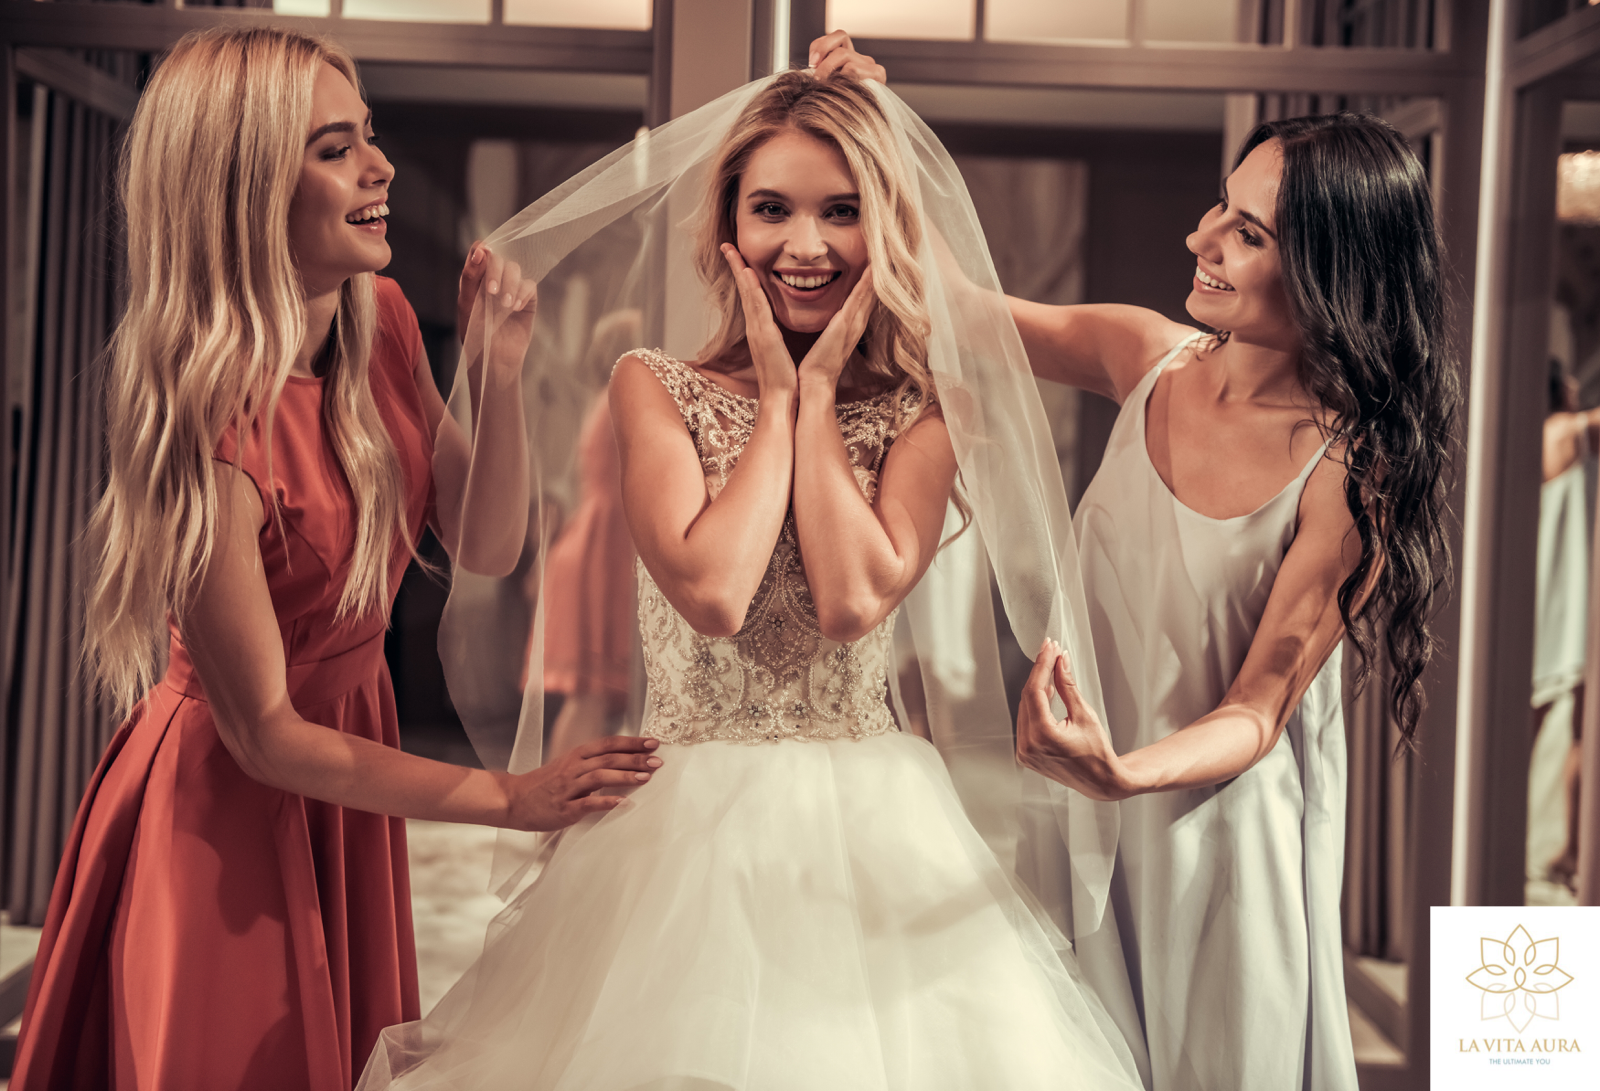 5 Tips to Feeling & Looking Your Best on Your Wedding Day!